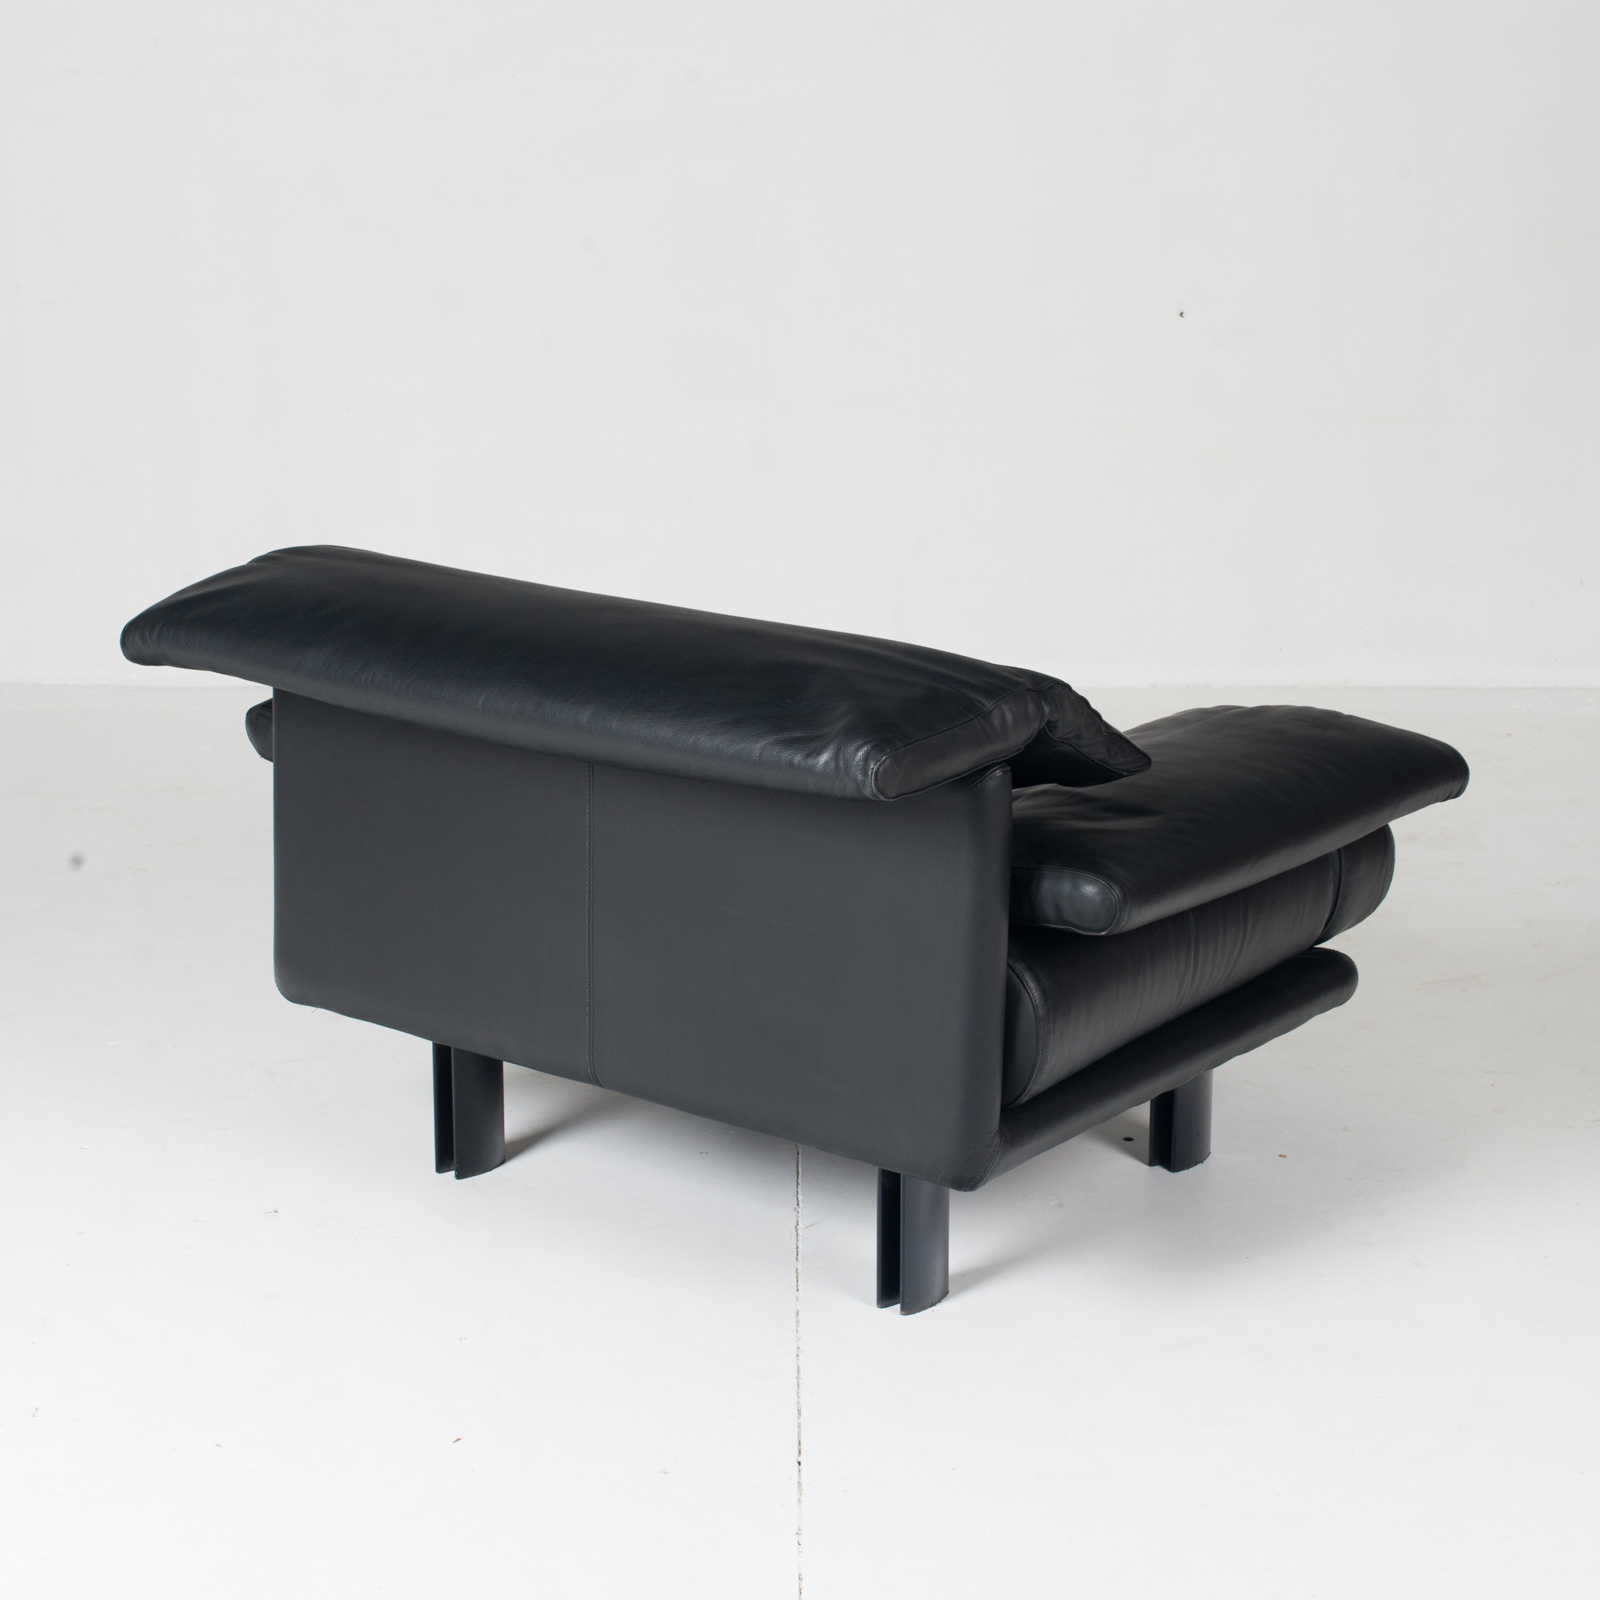 Alanda Armchair By Paolo Piva For B&b Italia In Black Leather, 1980s, Italy 7